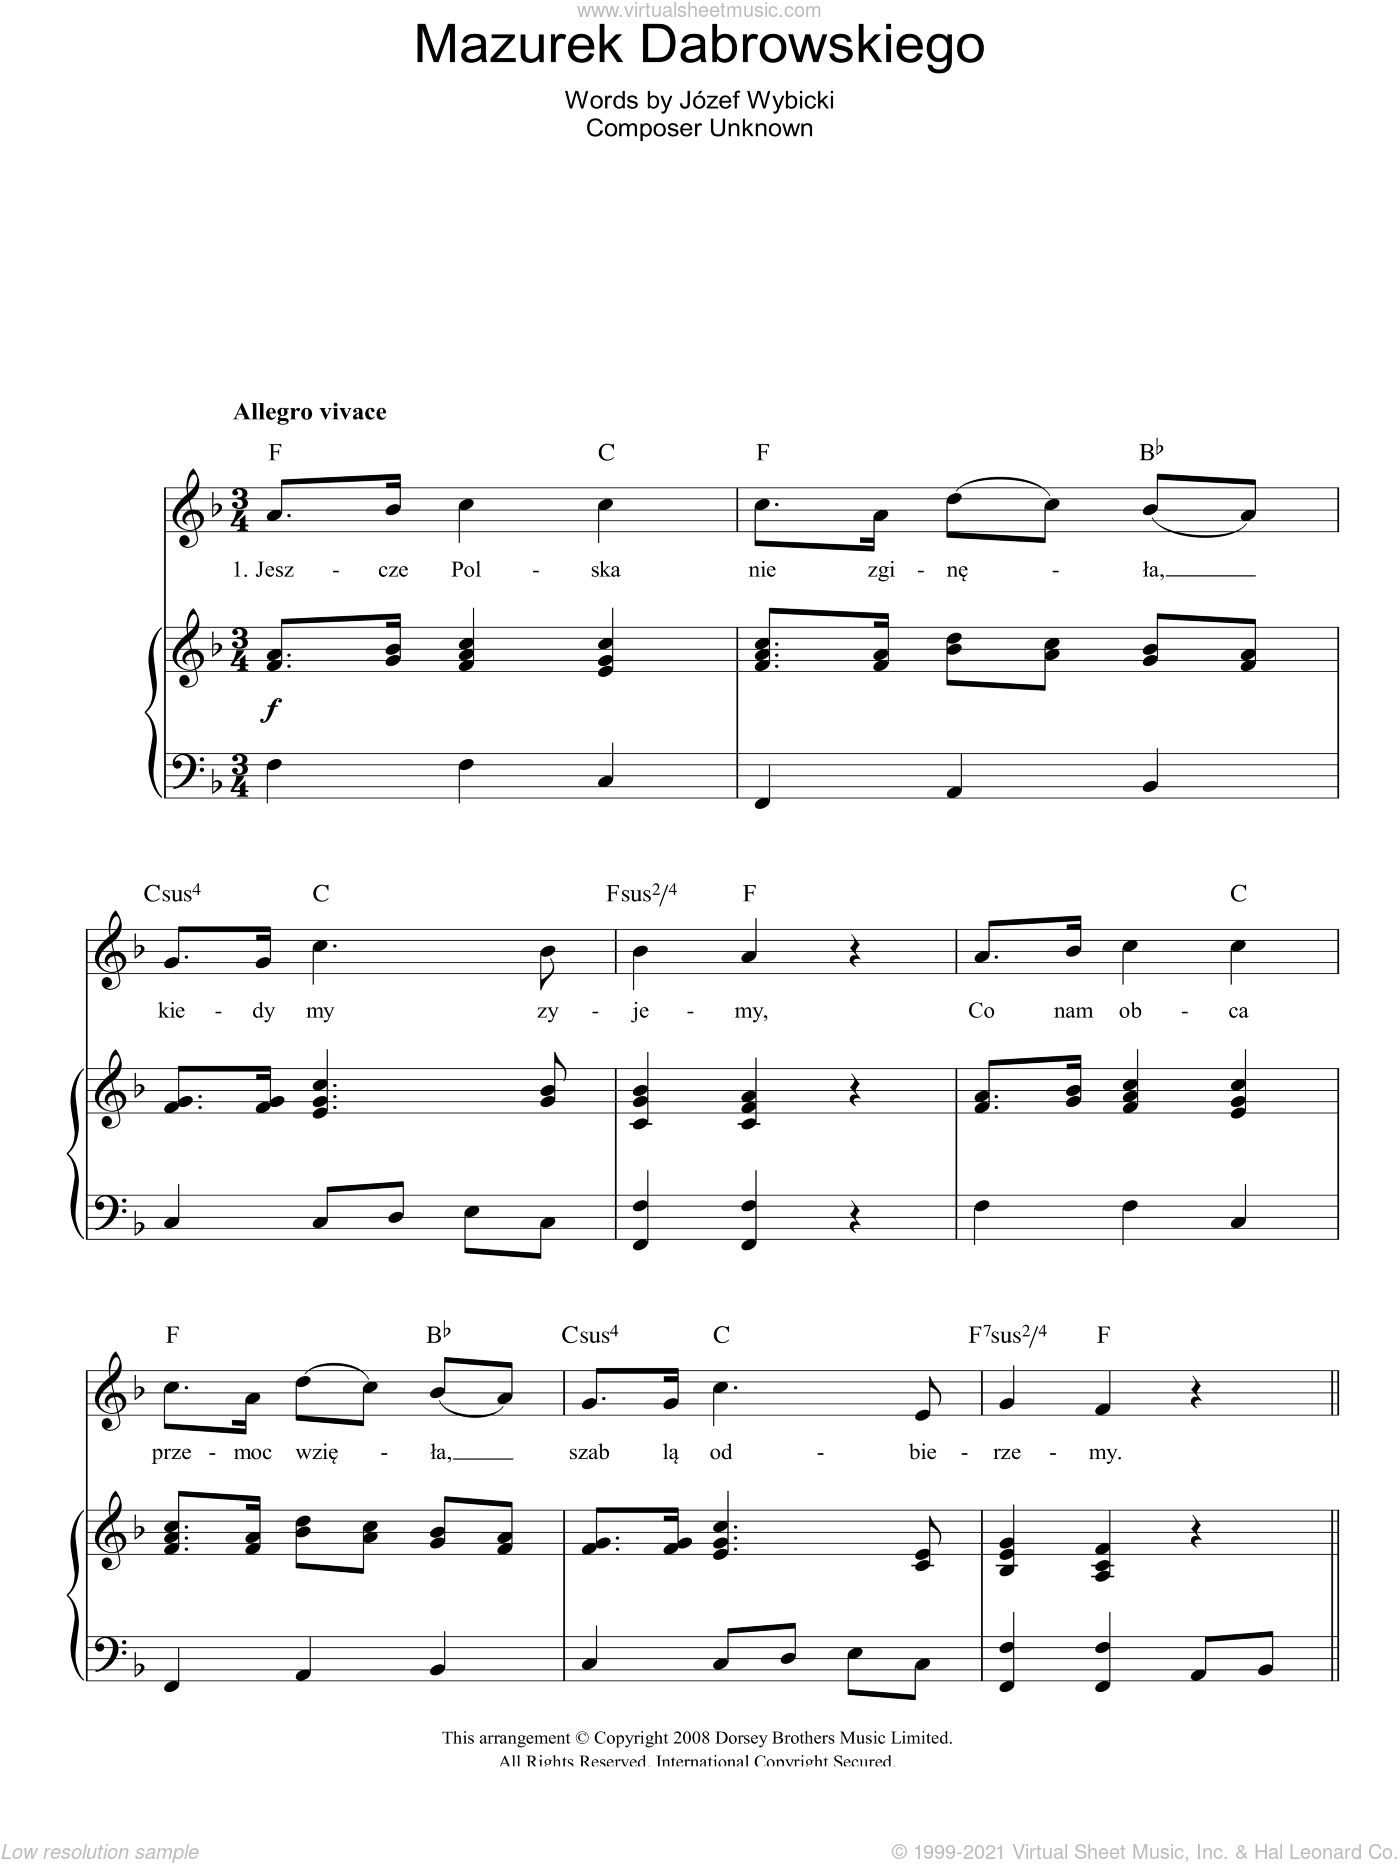 Mazurek Dabrowskiego (Polish National Anthem) sheet music for voice, piano or guitar by Jozef Wybicki